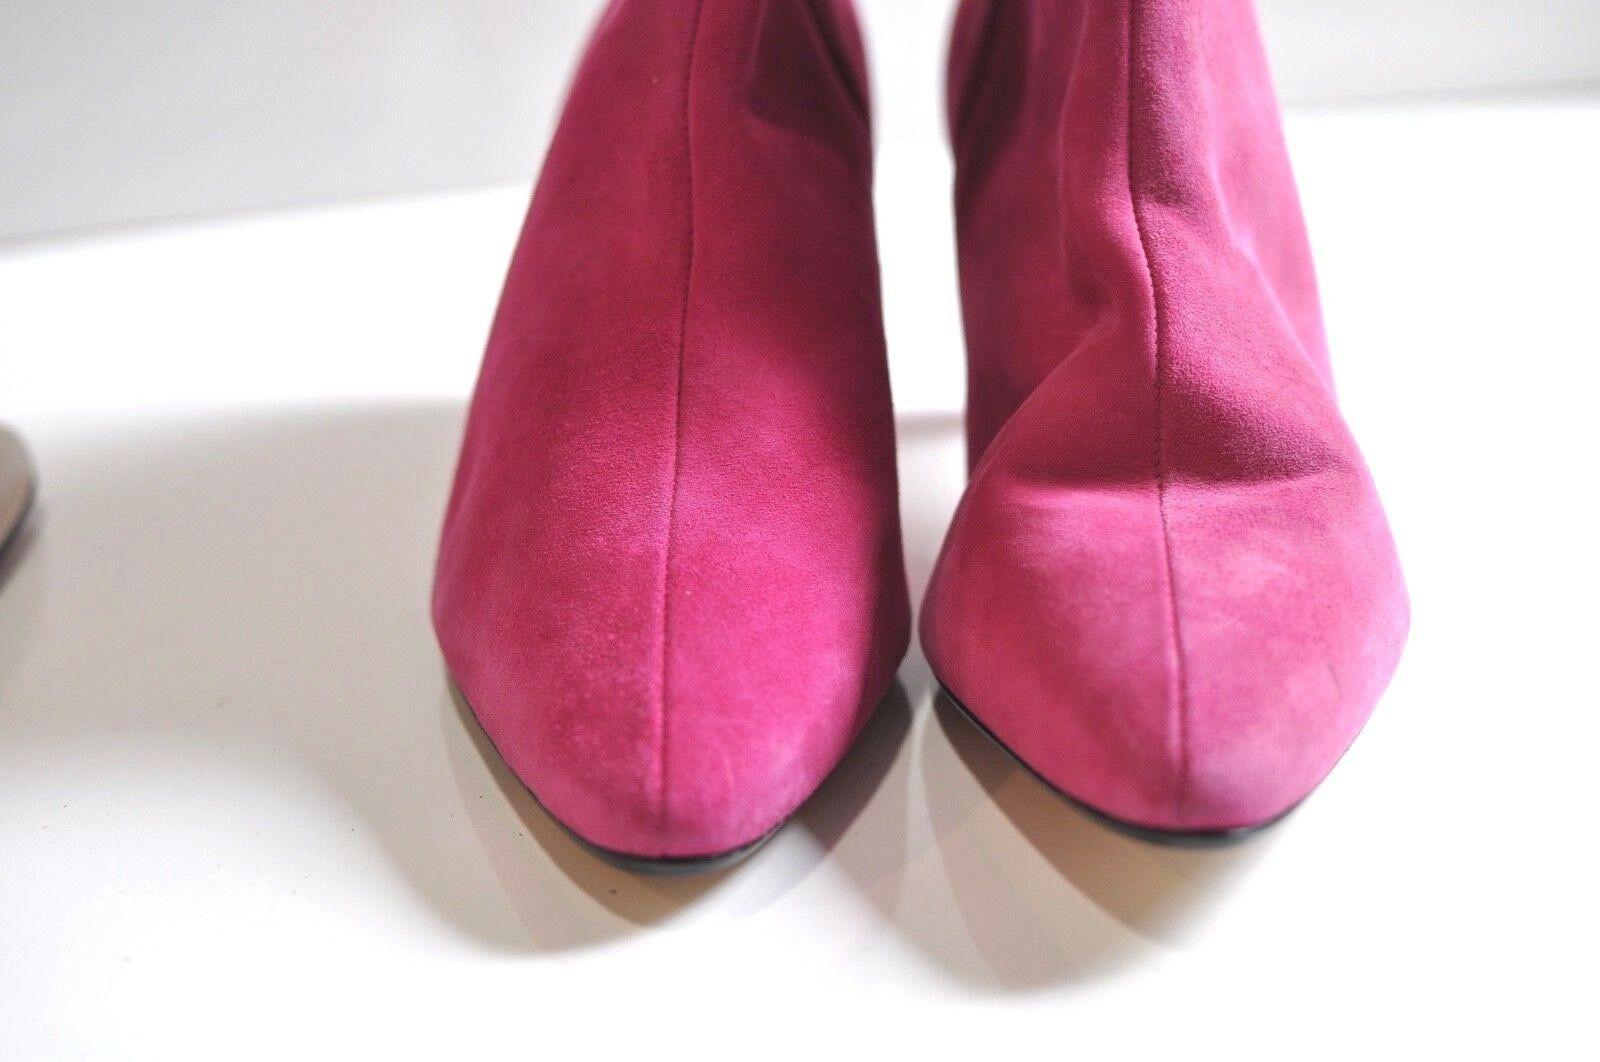 Proxy Donna 11M leather ankle boots heels size 11M Donna made in Spain 2e5085